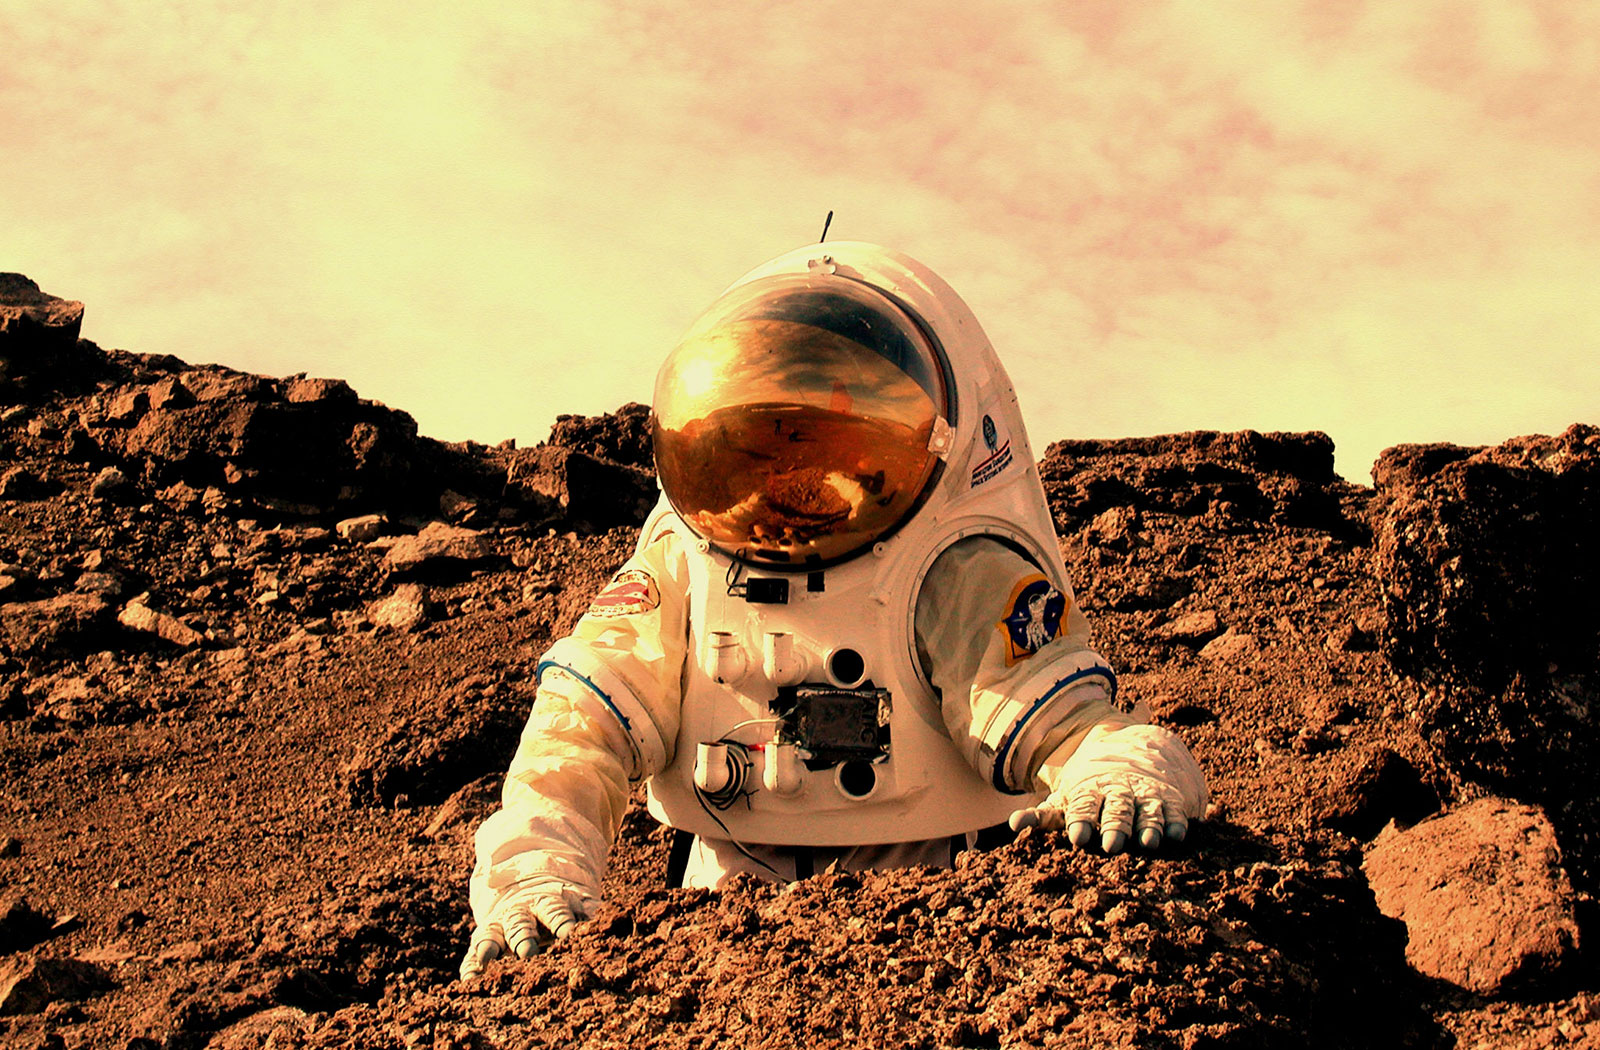 Astronaut_working_on_Mars.jpg